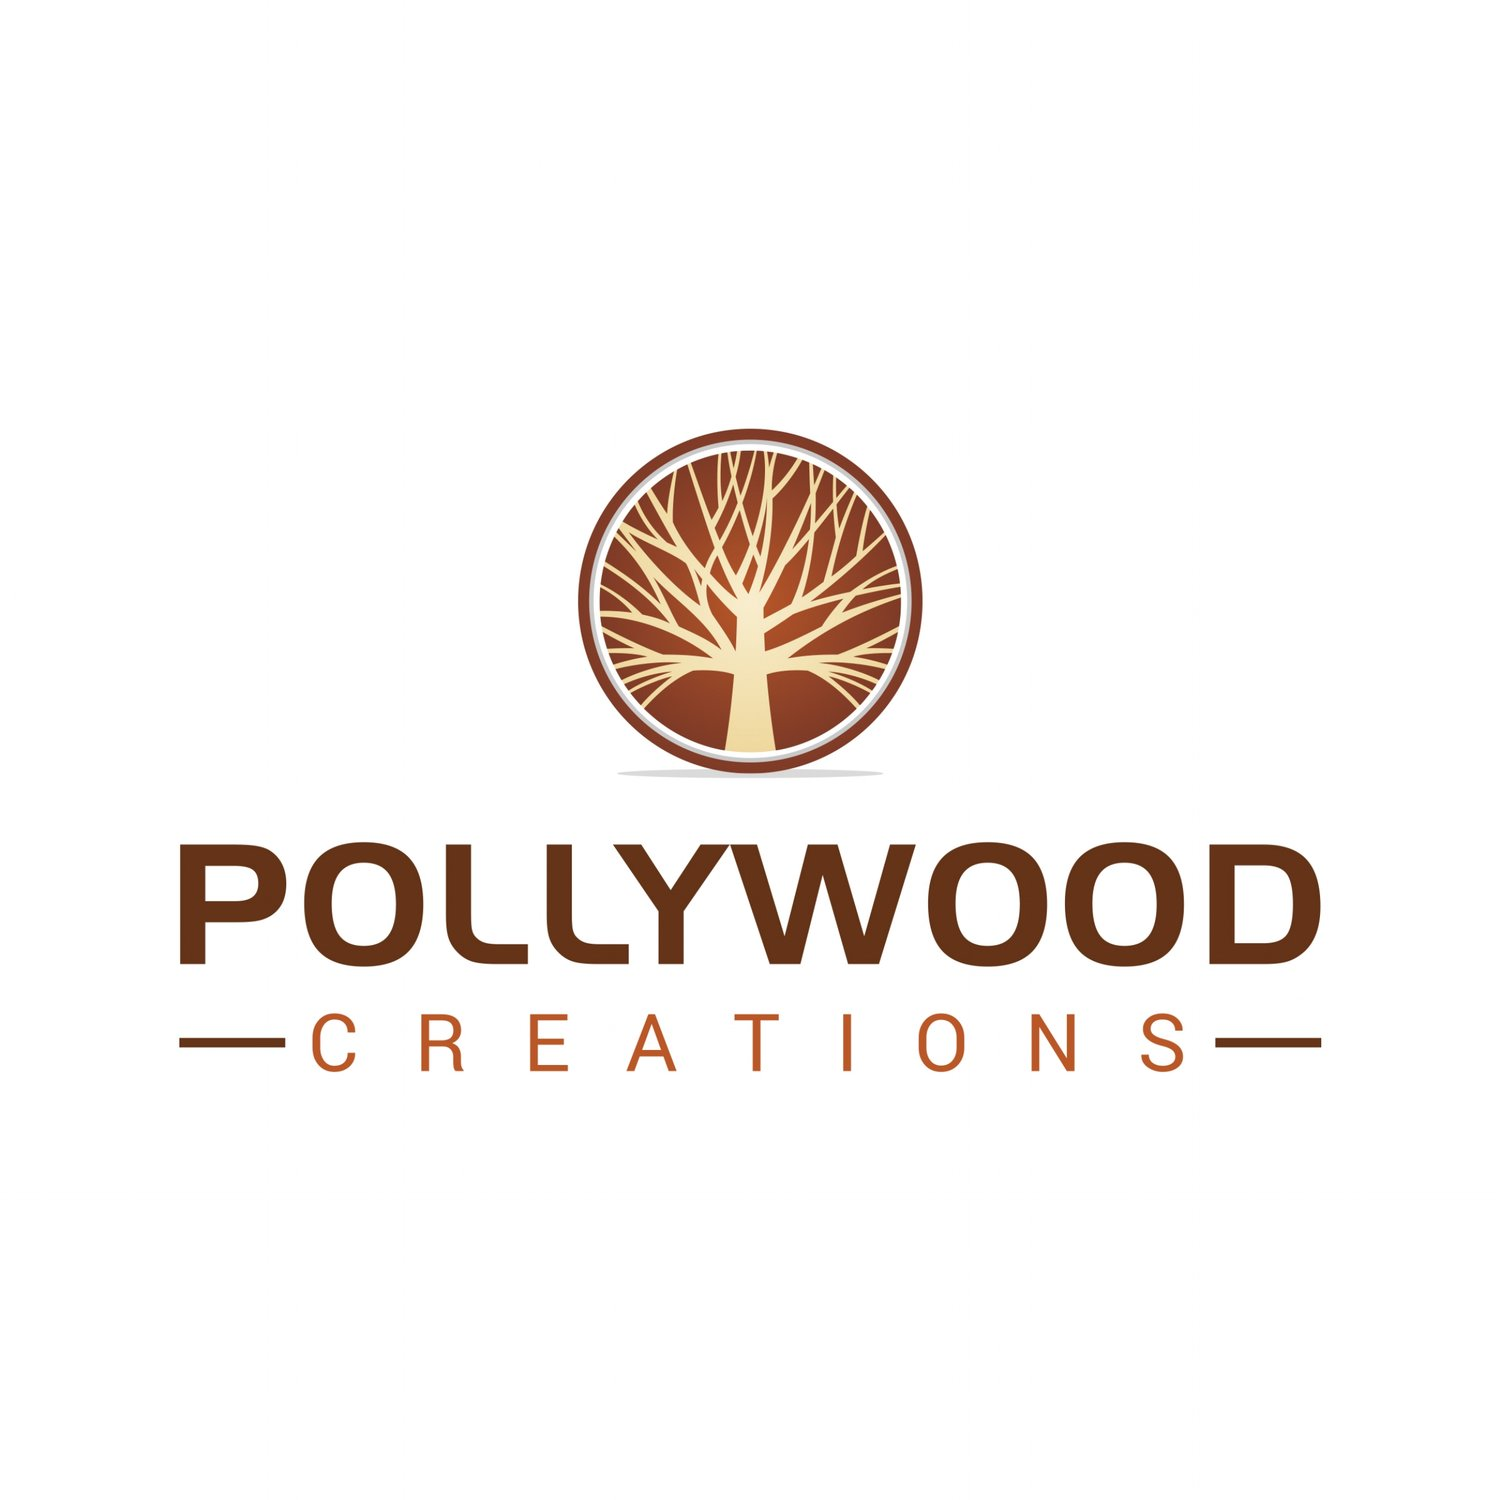 Pollywood Creations